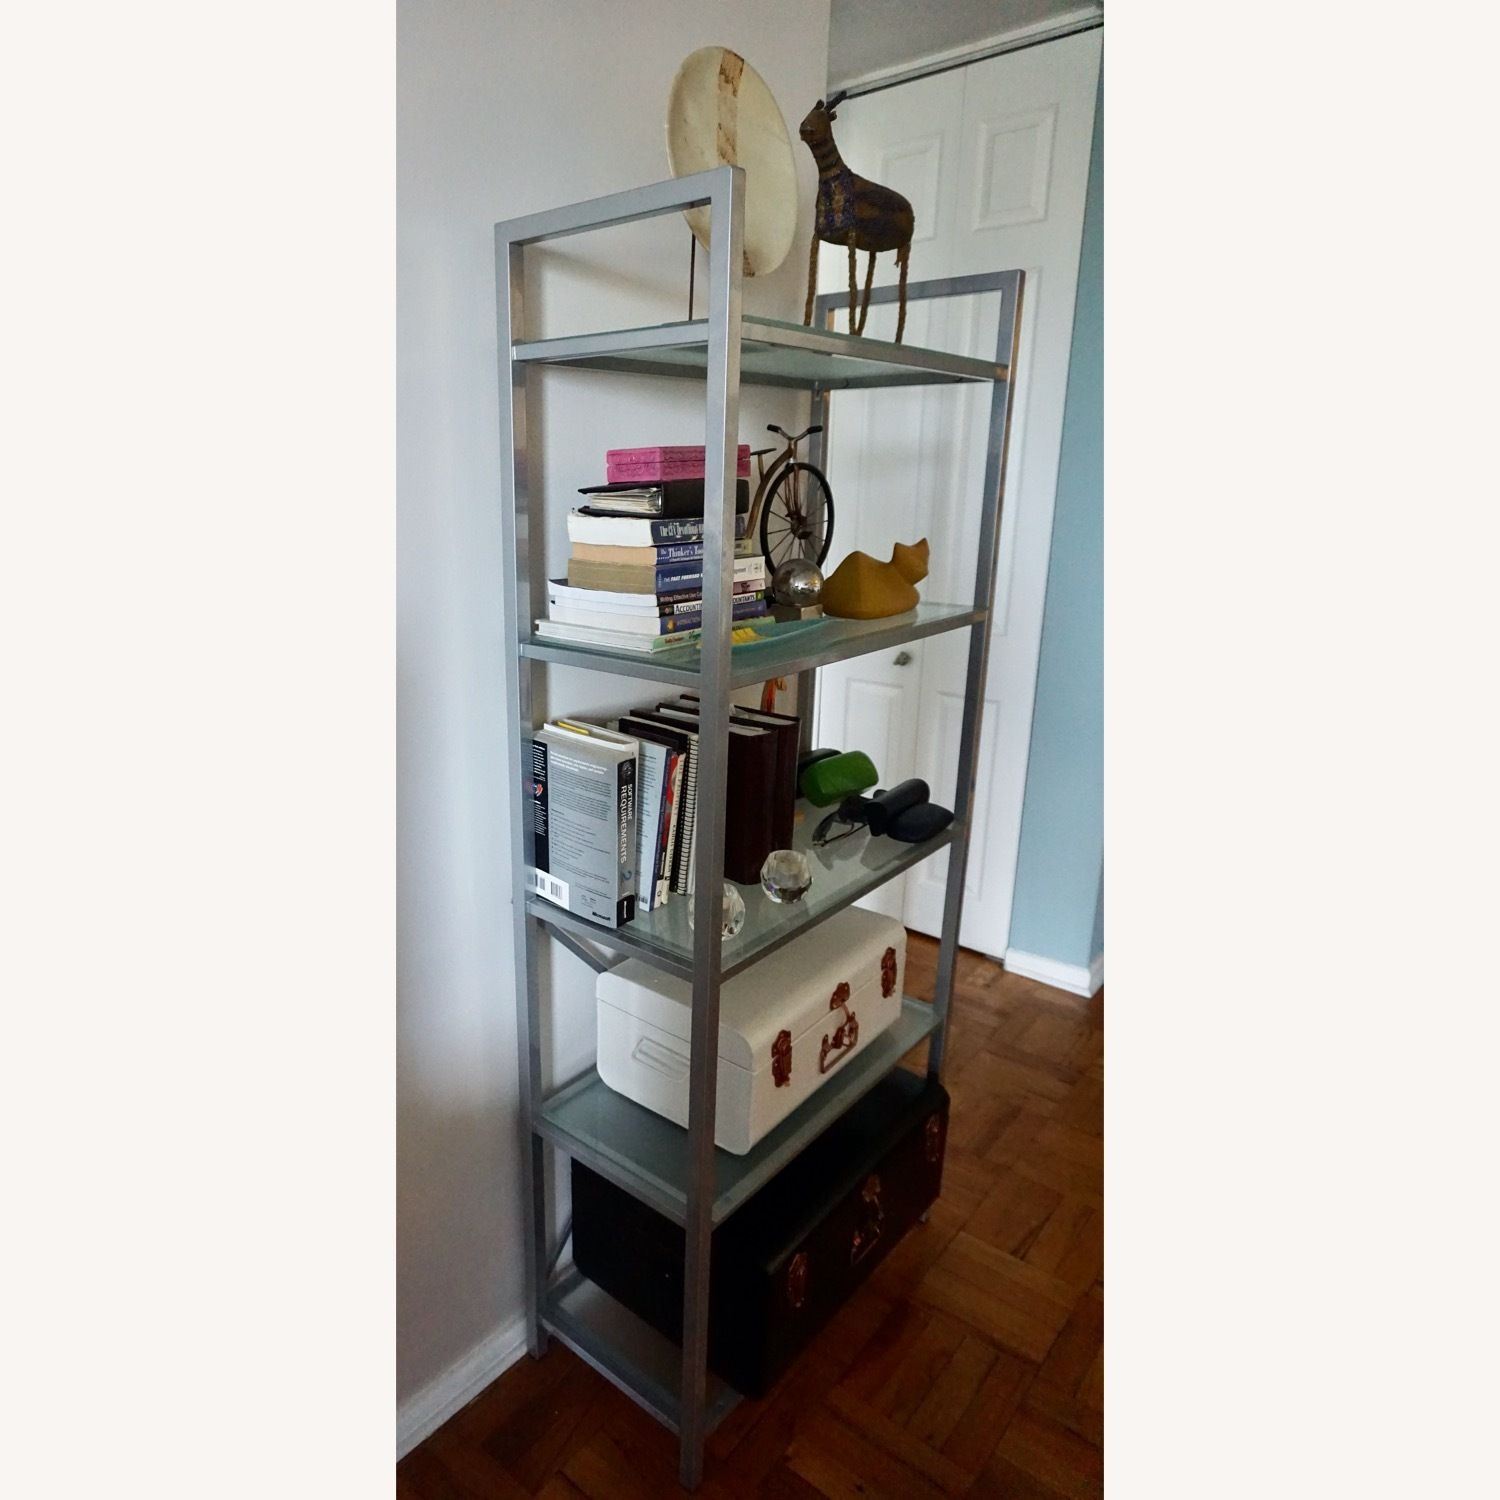 Pair of Wayfair Silver Bookcases - image-1